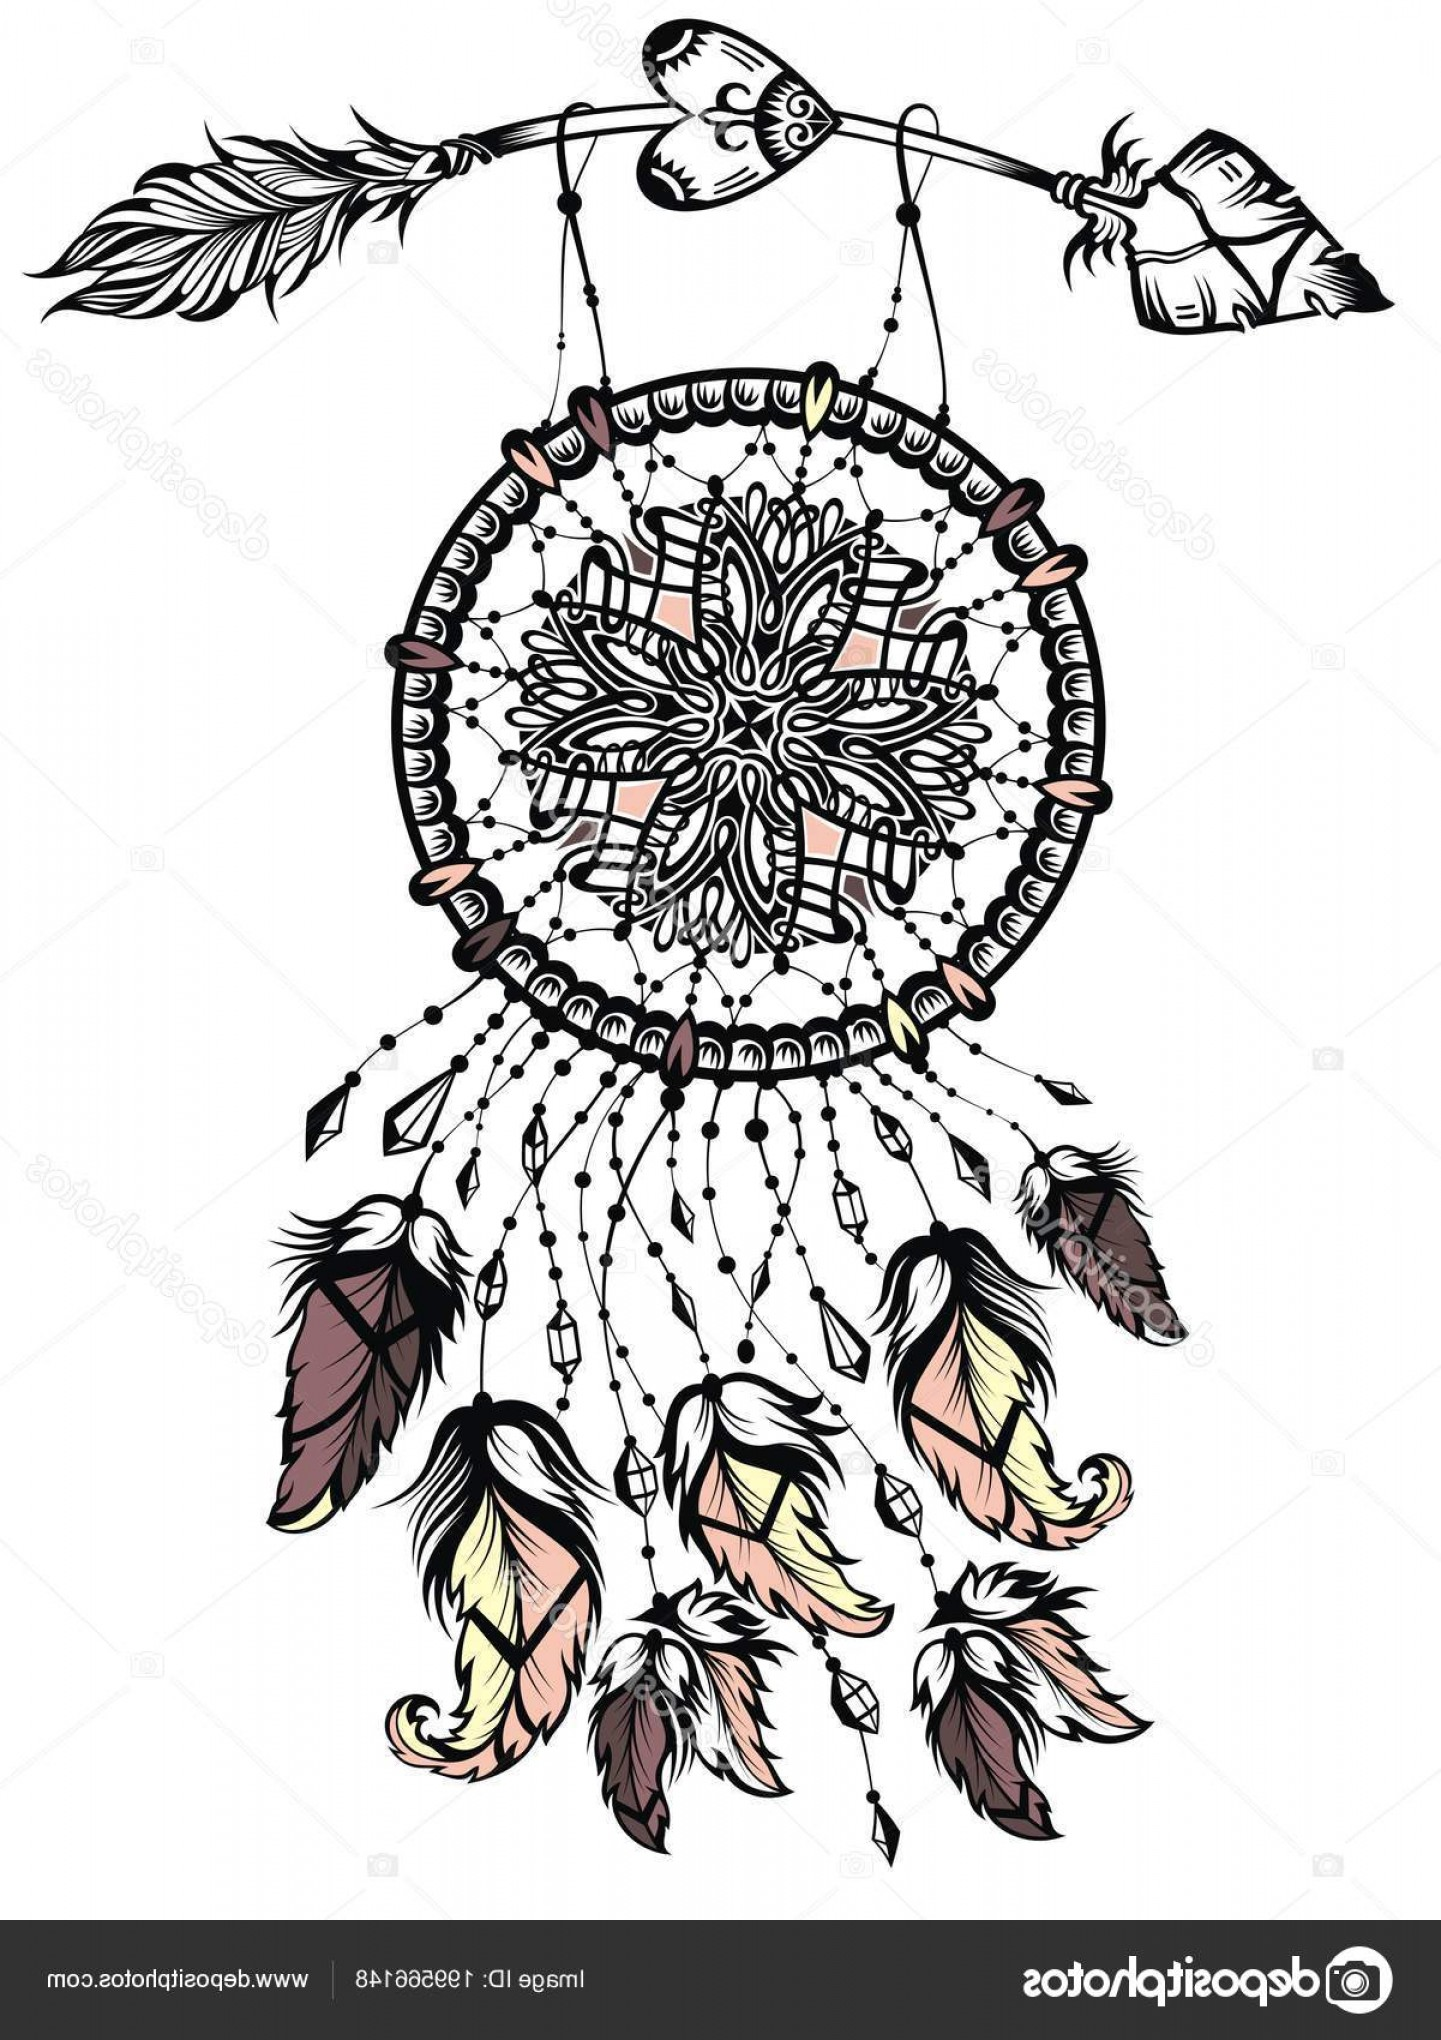 Dreamcatcher Tattoo Vector: Stock Illustration Illustration Dream Catcher Arrow Native